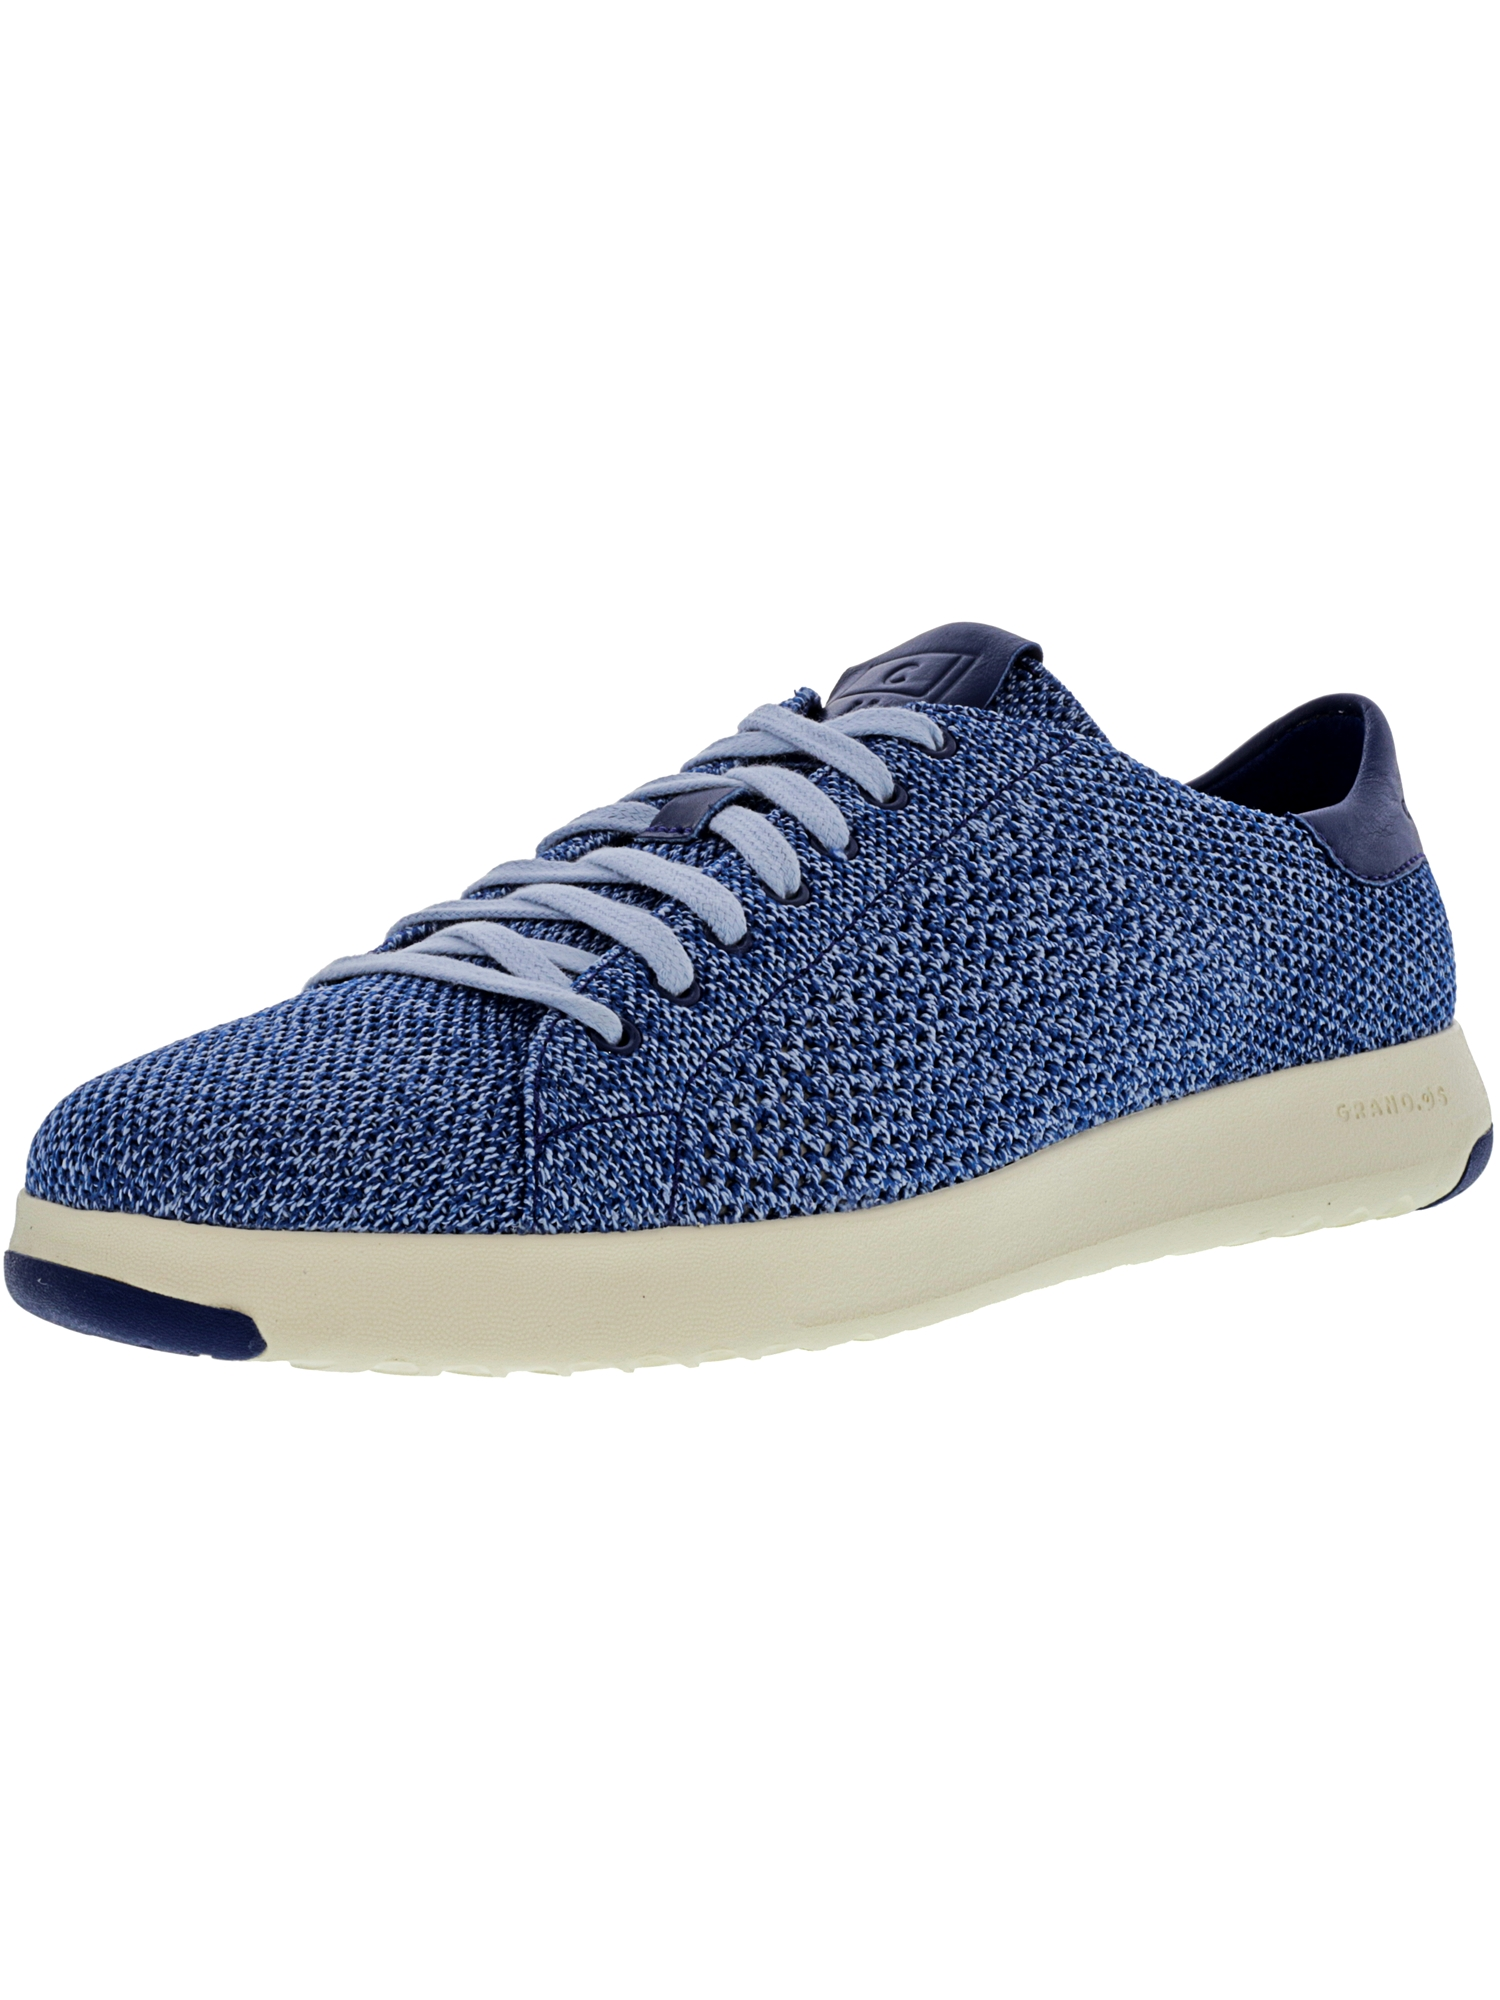 Cole Haan Men's Grandpro Tennis Stitchlite Navy Peony / Chambray Blue Ankle-High Fashion Sneaker - 10M